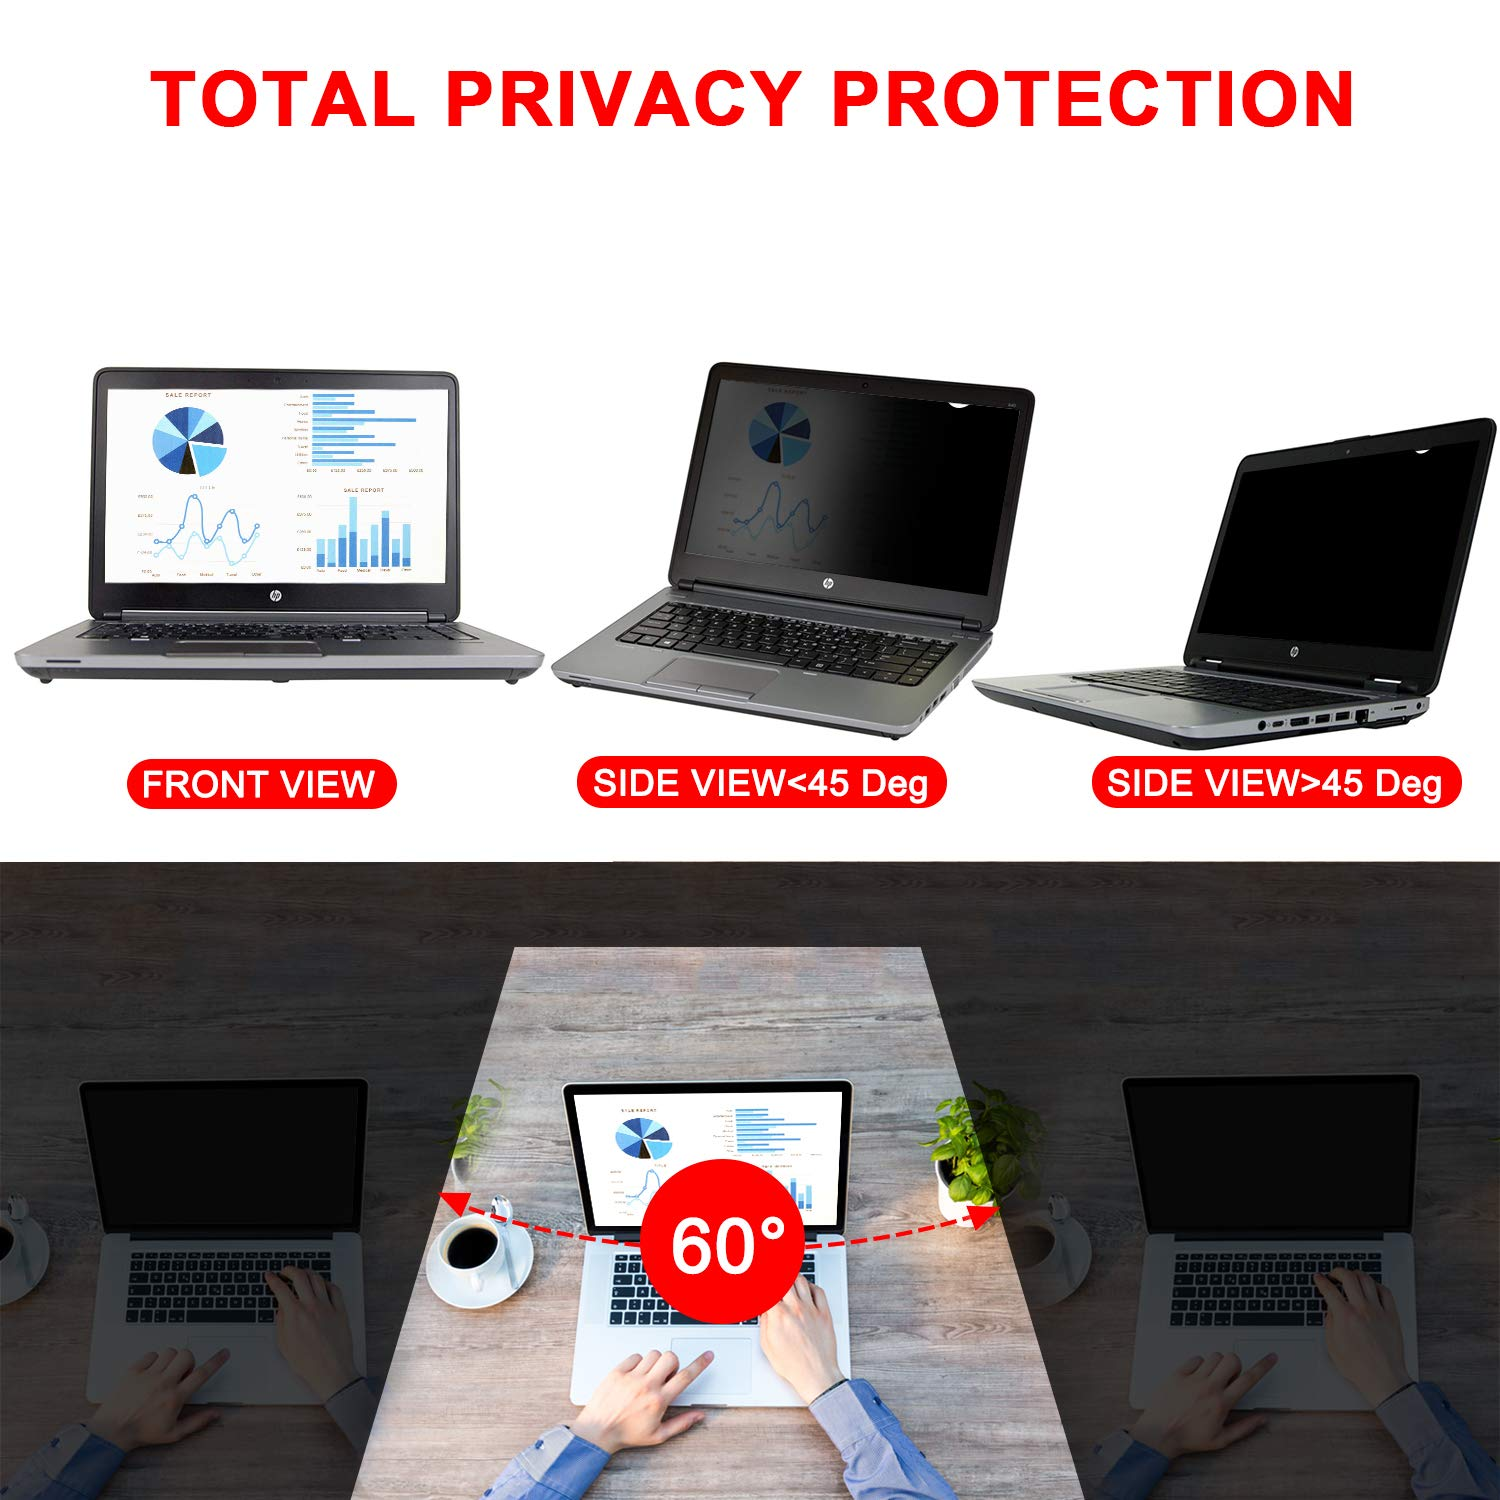 Magicmoon Privacy Filter Screen Protector, Anti-Spy&Glare Film for 14 inch Widescreen Notebook Laptop (14'', 16:9 Aspect Ratio) by Magicmoon (Image #3)